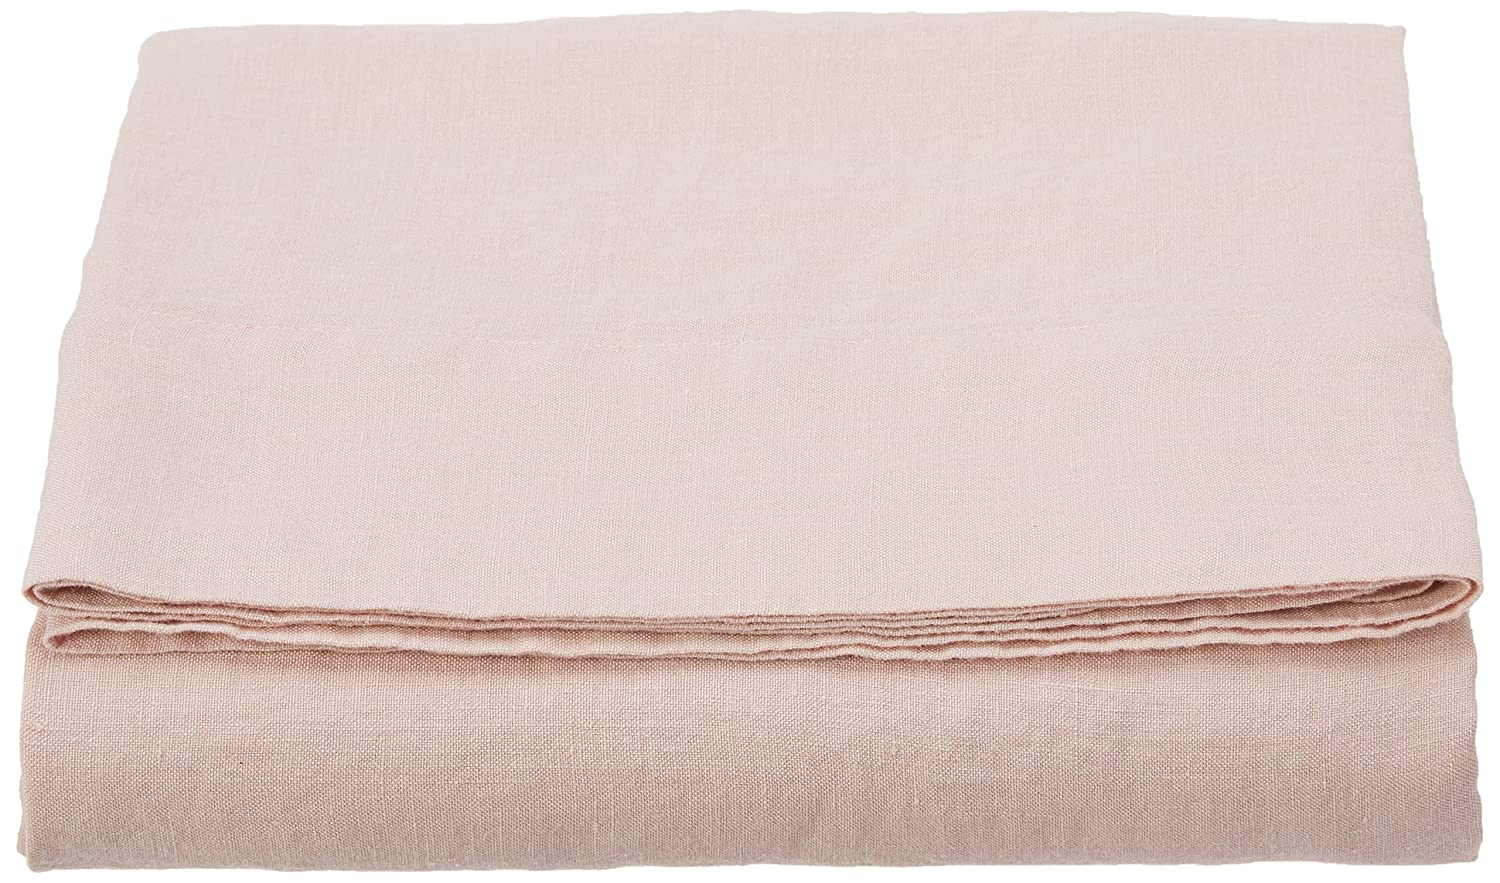 LinenMe 10 Stone Washed Bed Linen Flat Sheet, 66 x 102, Rosa